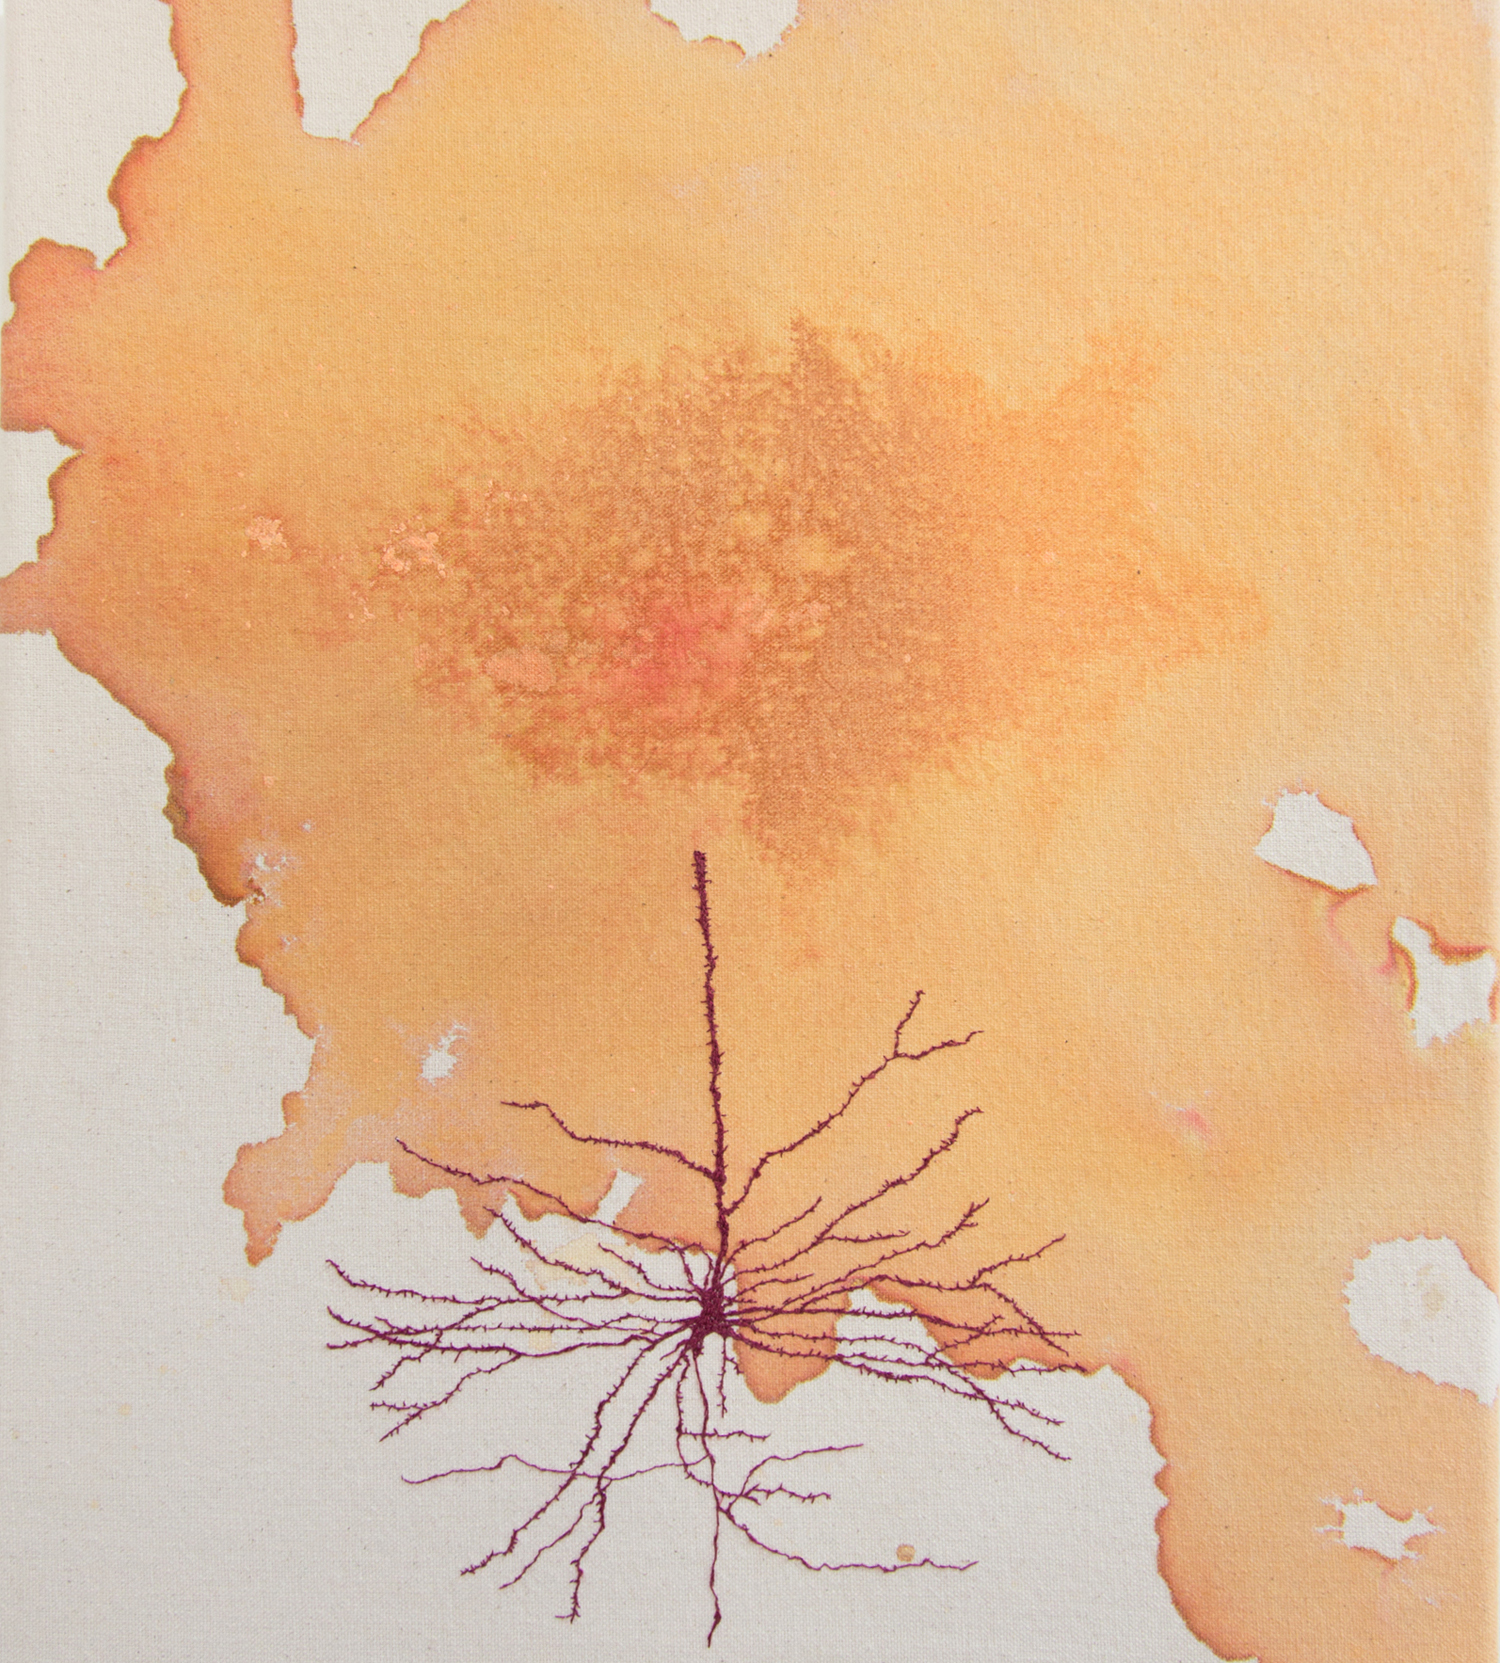 Neuron Stain (after Cajal)